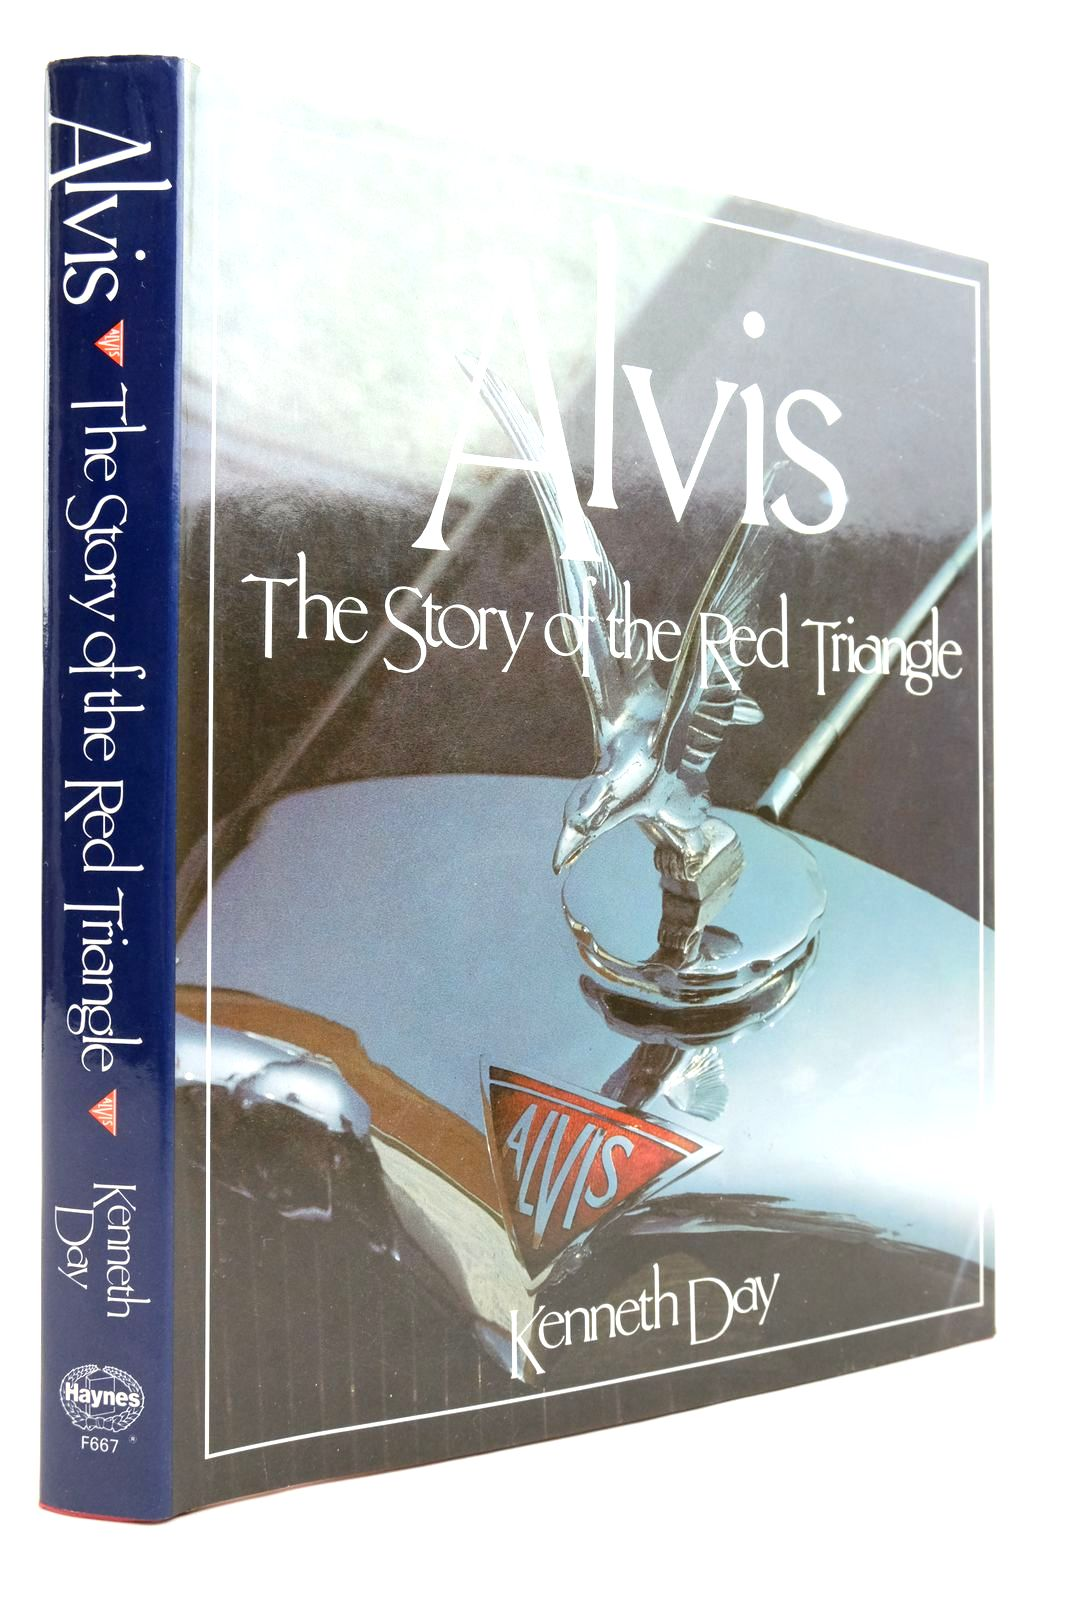 Photo of ALVIS THE STORY OF THE RED TRIANGLE written by Day, Kenneth published by Foulis, Haynes Publishing Group (STOCK CODE: 2134645)  for sale by Stella & Rose's Books